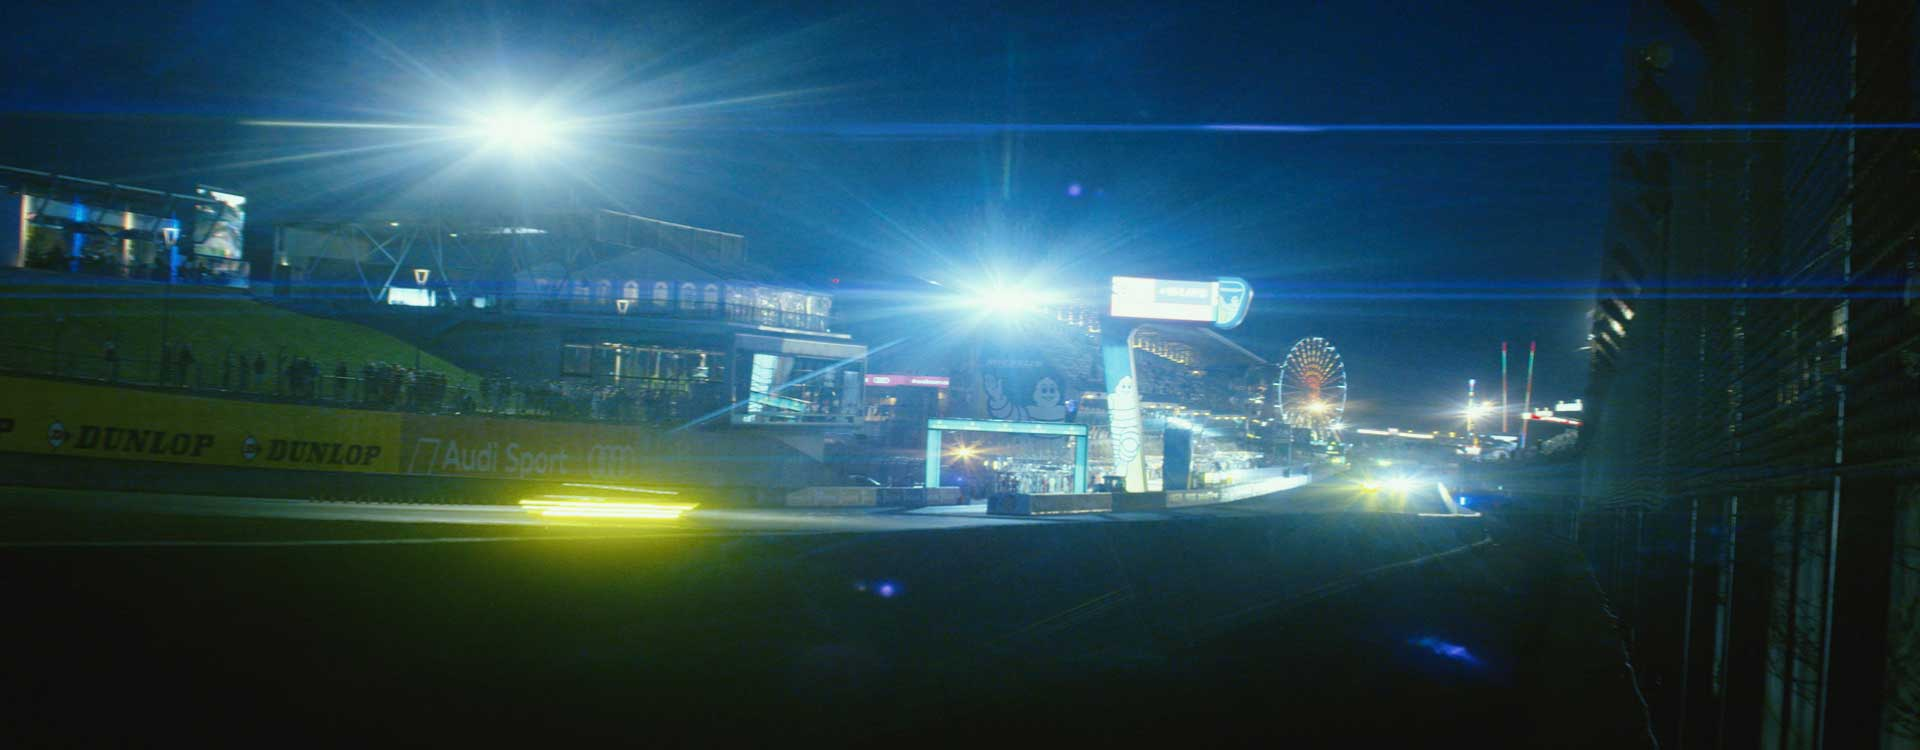 Racetrack by night. Still from Toyota Hybrid Racing - Commercial Barbeque Design